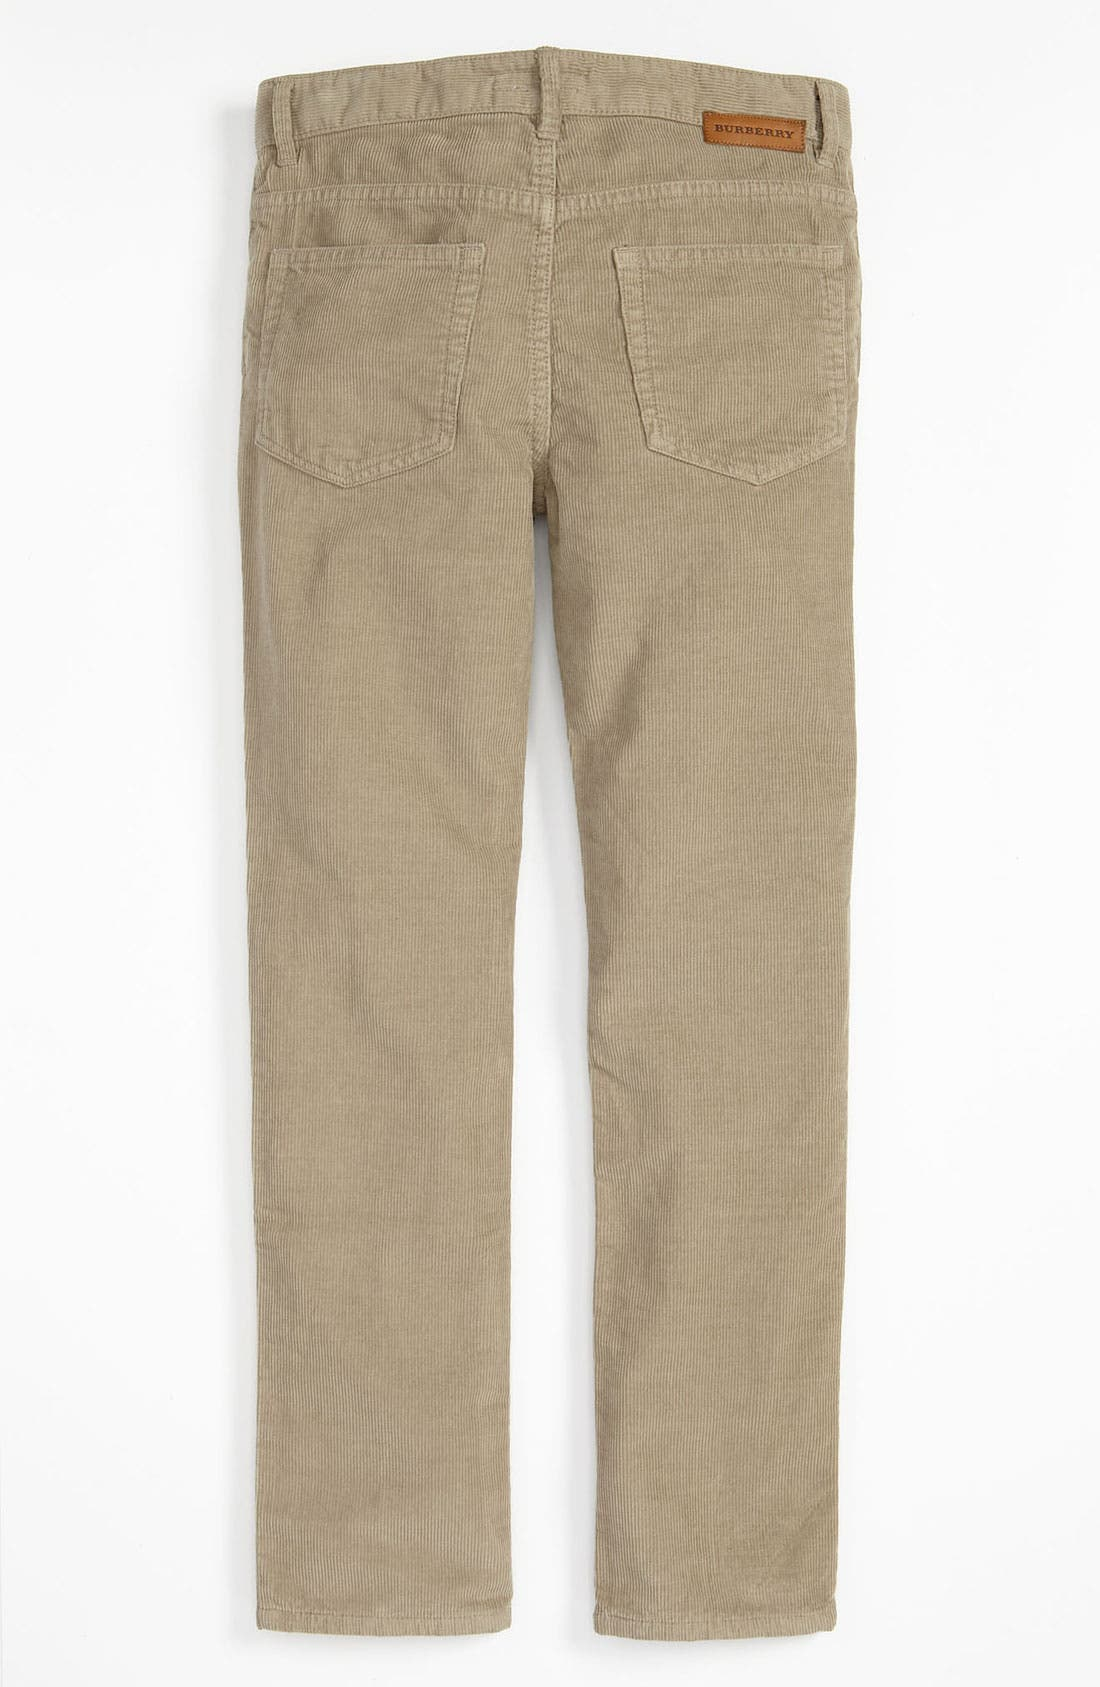 Alternate Image 1 Selected - Burberry Corduroy Pants (Big Boys)